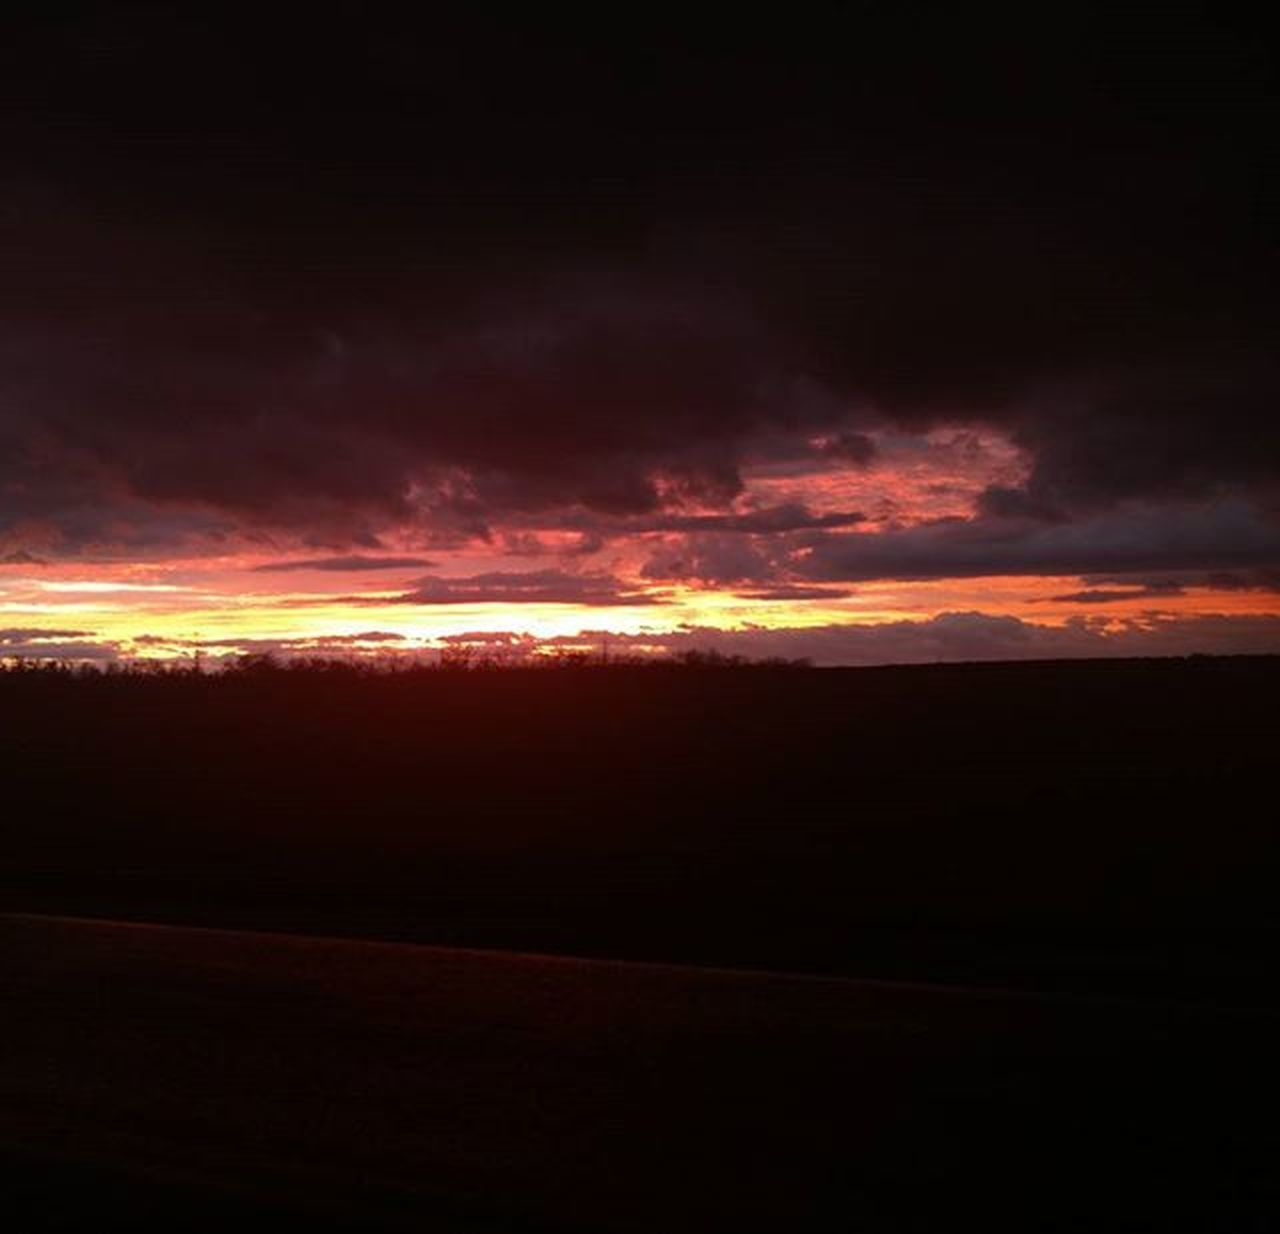 cloud - sky, sunset, dramatic sky, scenics, sky, tranquil scene, majestic, nature, outdoors, night, red, no people, beauty in nature, tranquility, landscape, space, astronomy